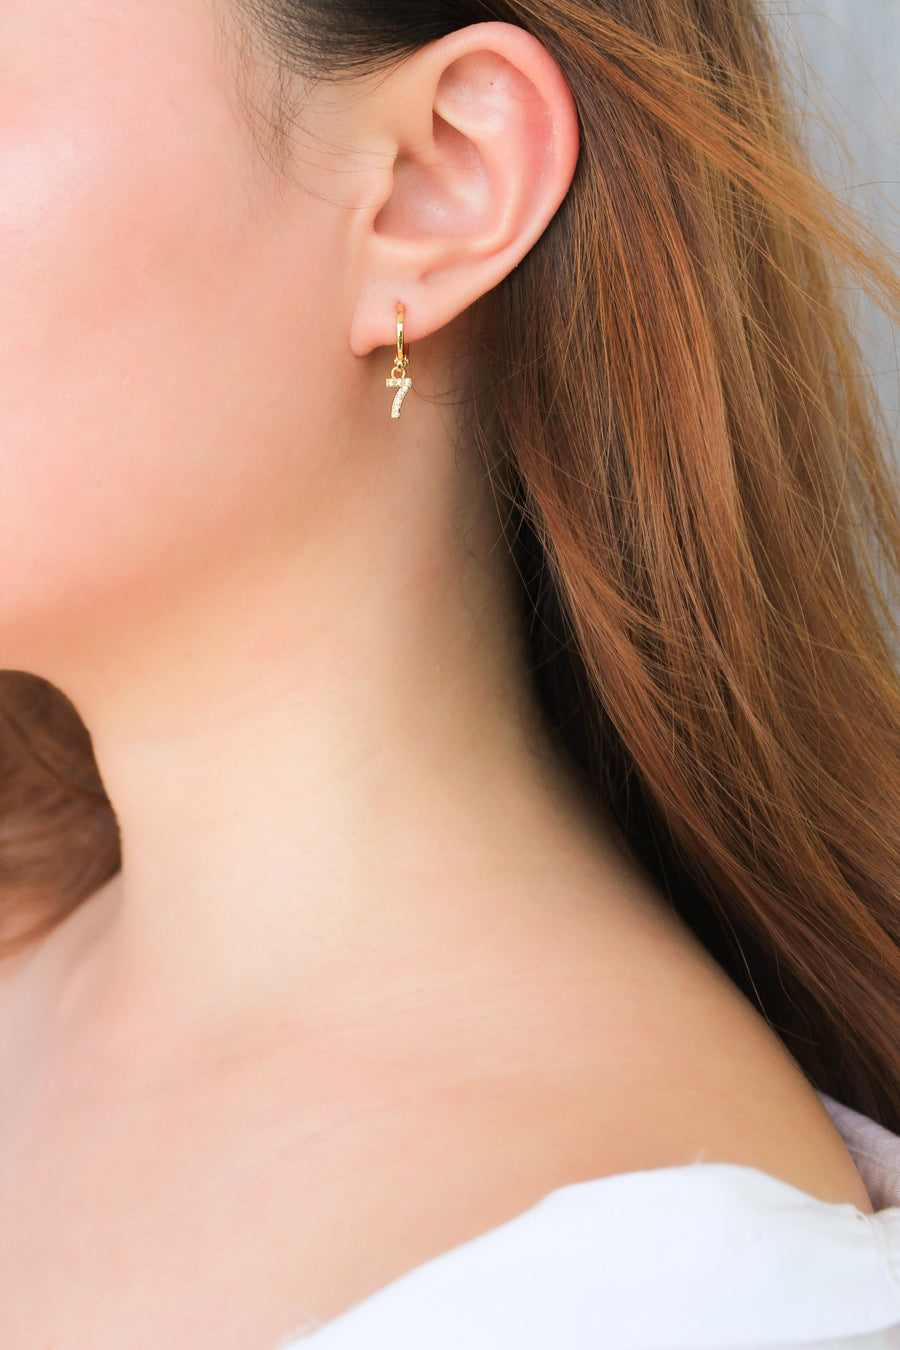 Personalised Earrings - Lucky Number